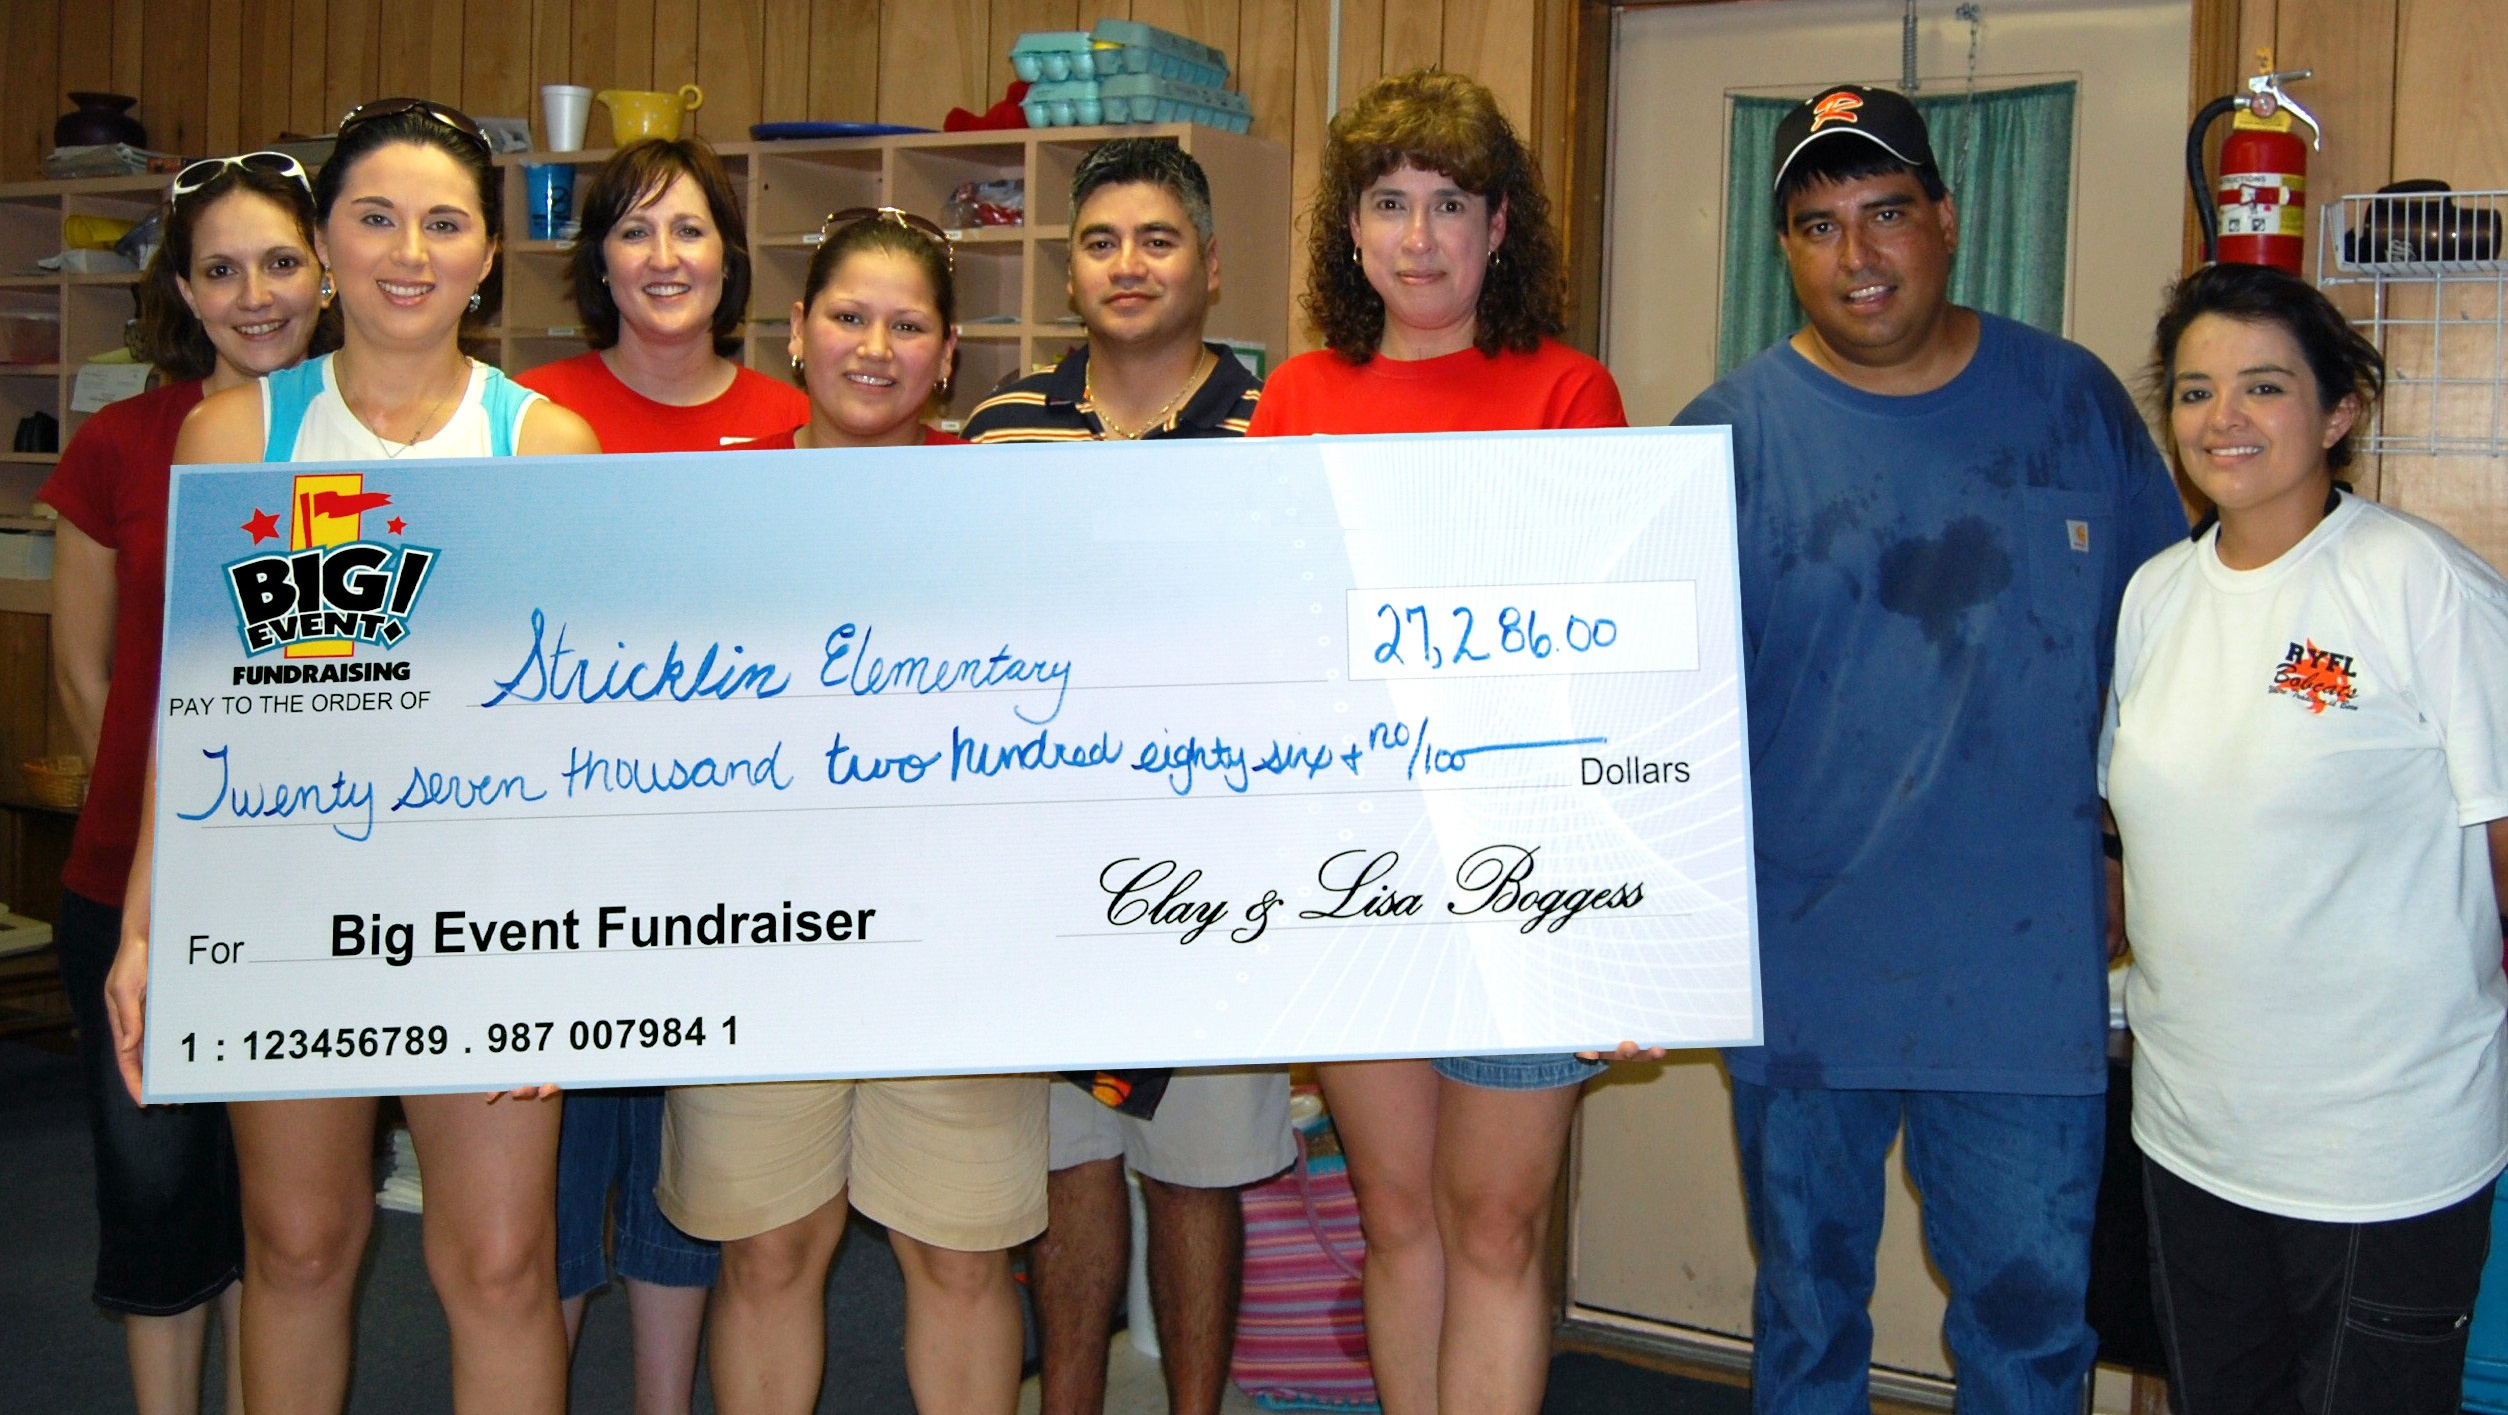 Refugio Elementary School fundraising team holding check